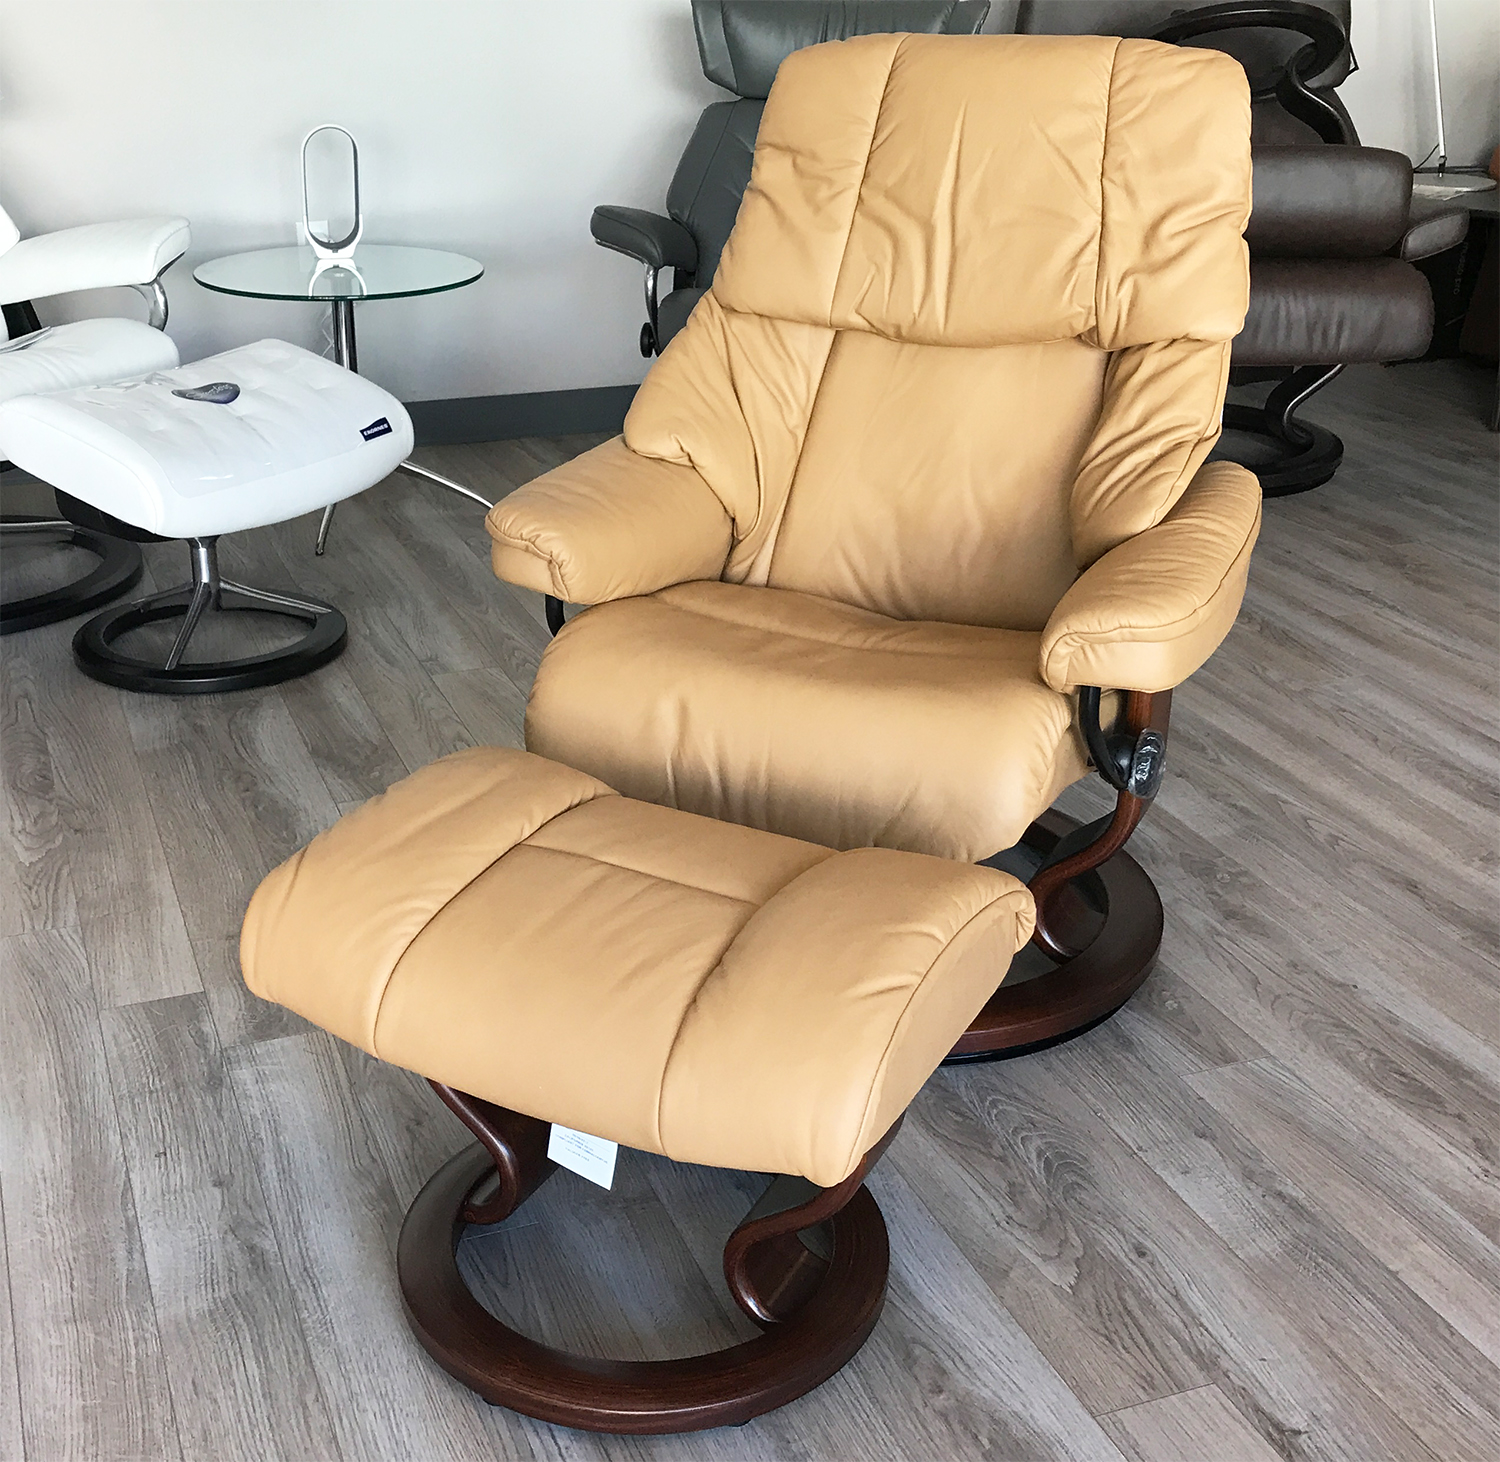 Stressless Video Stressless Reno Paloma Pearl Leather Recliner Chair And Ottoman By Ekornes